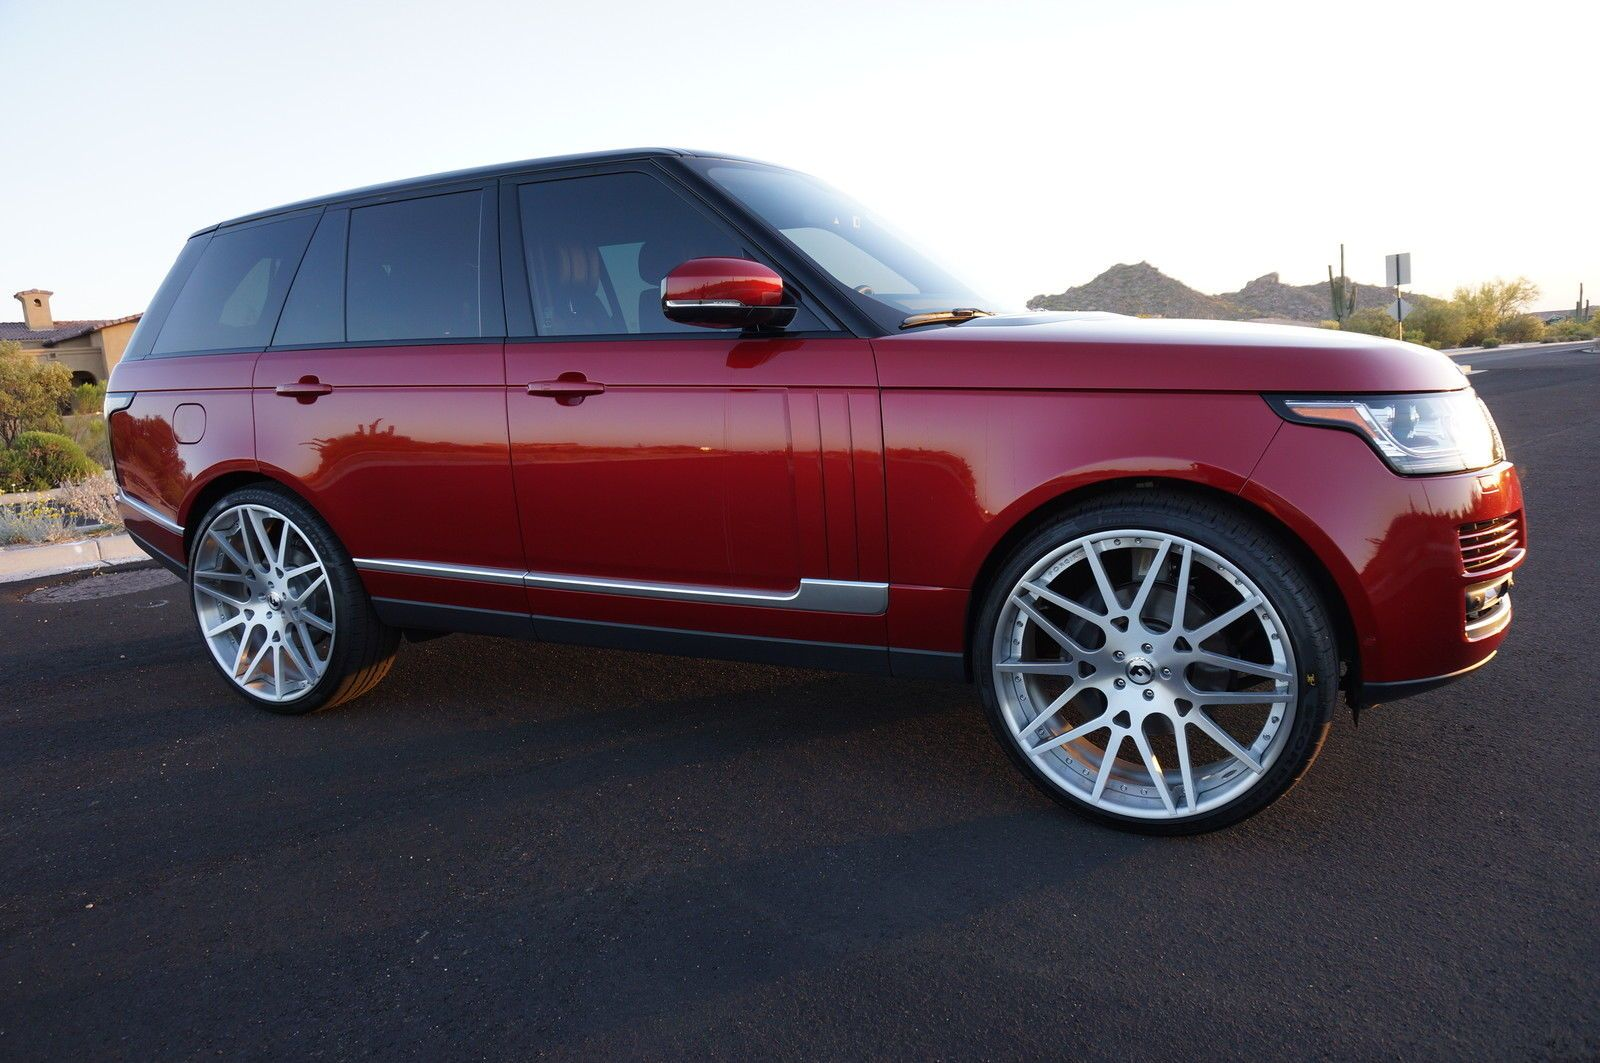 2014 Supercharged Range Rover On 26 Inch Forgiatos For Sale Friday Rides Magazine Range Rover Supercharged Suv Range Rover Range Rover